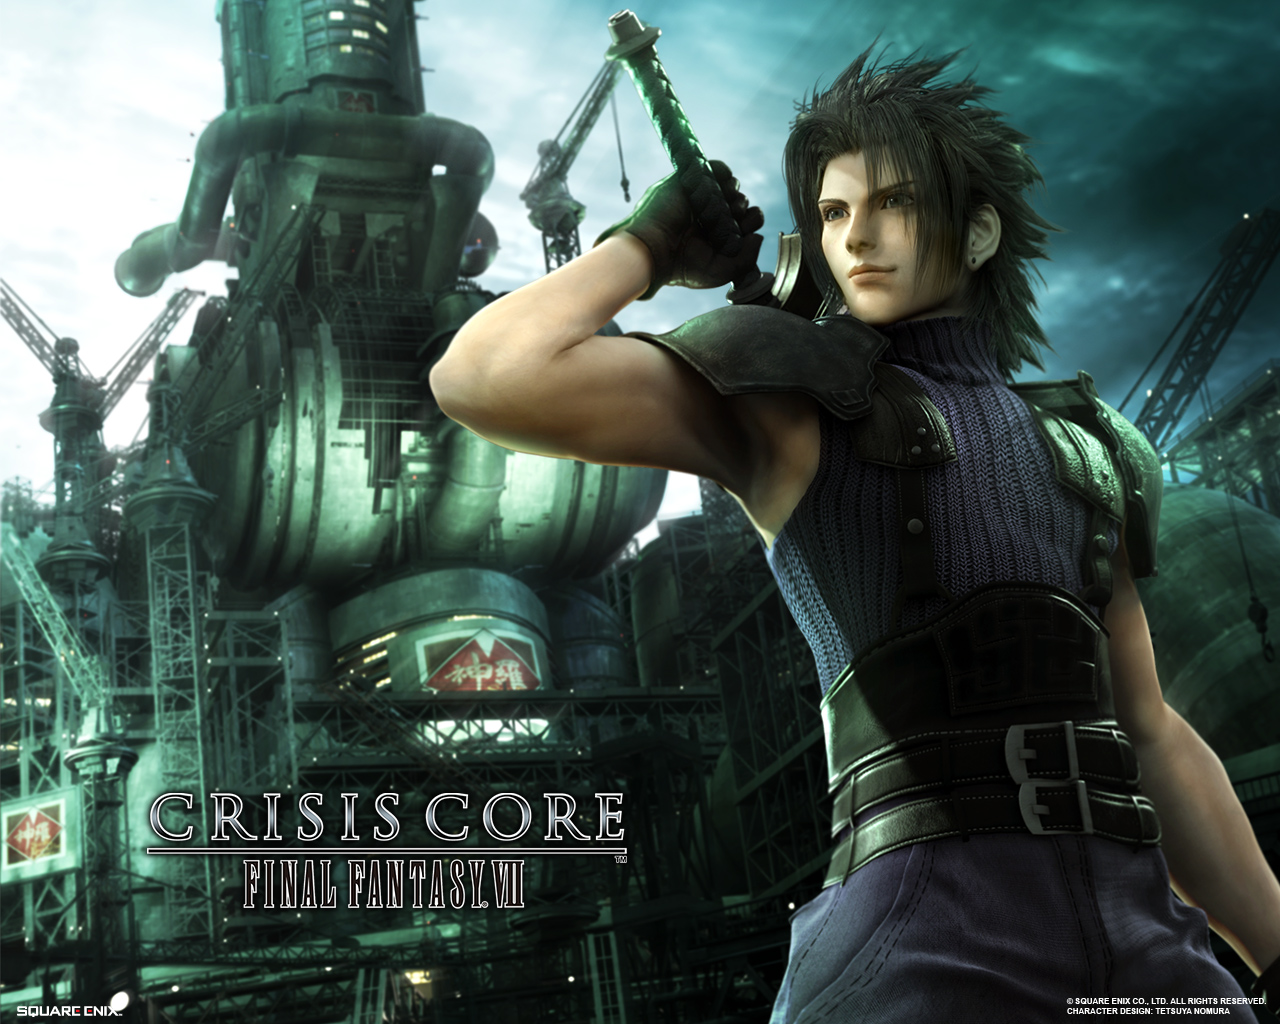 Final fantasy vii crisis core ff7cc wallpapers crisis core characters wallpaper zack wallpaper altavistaventures Image collections